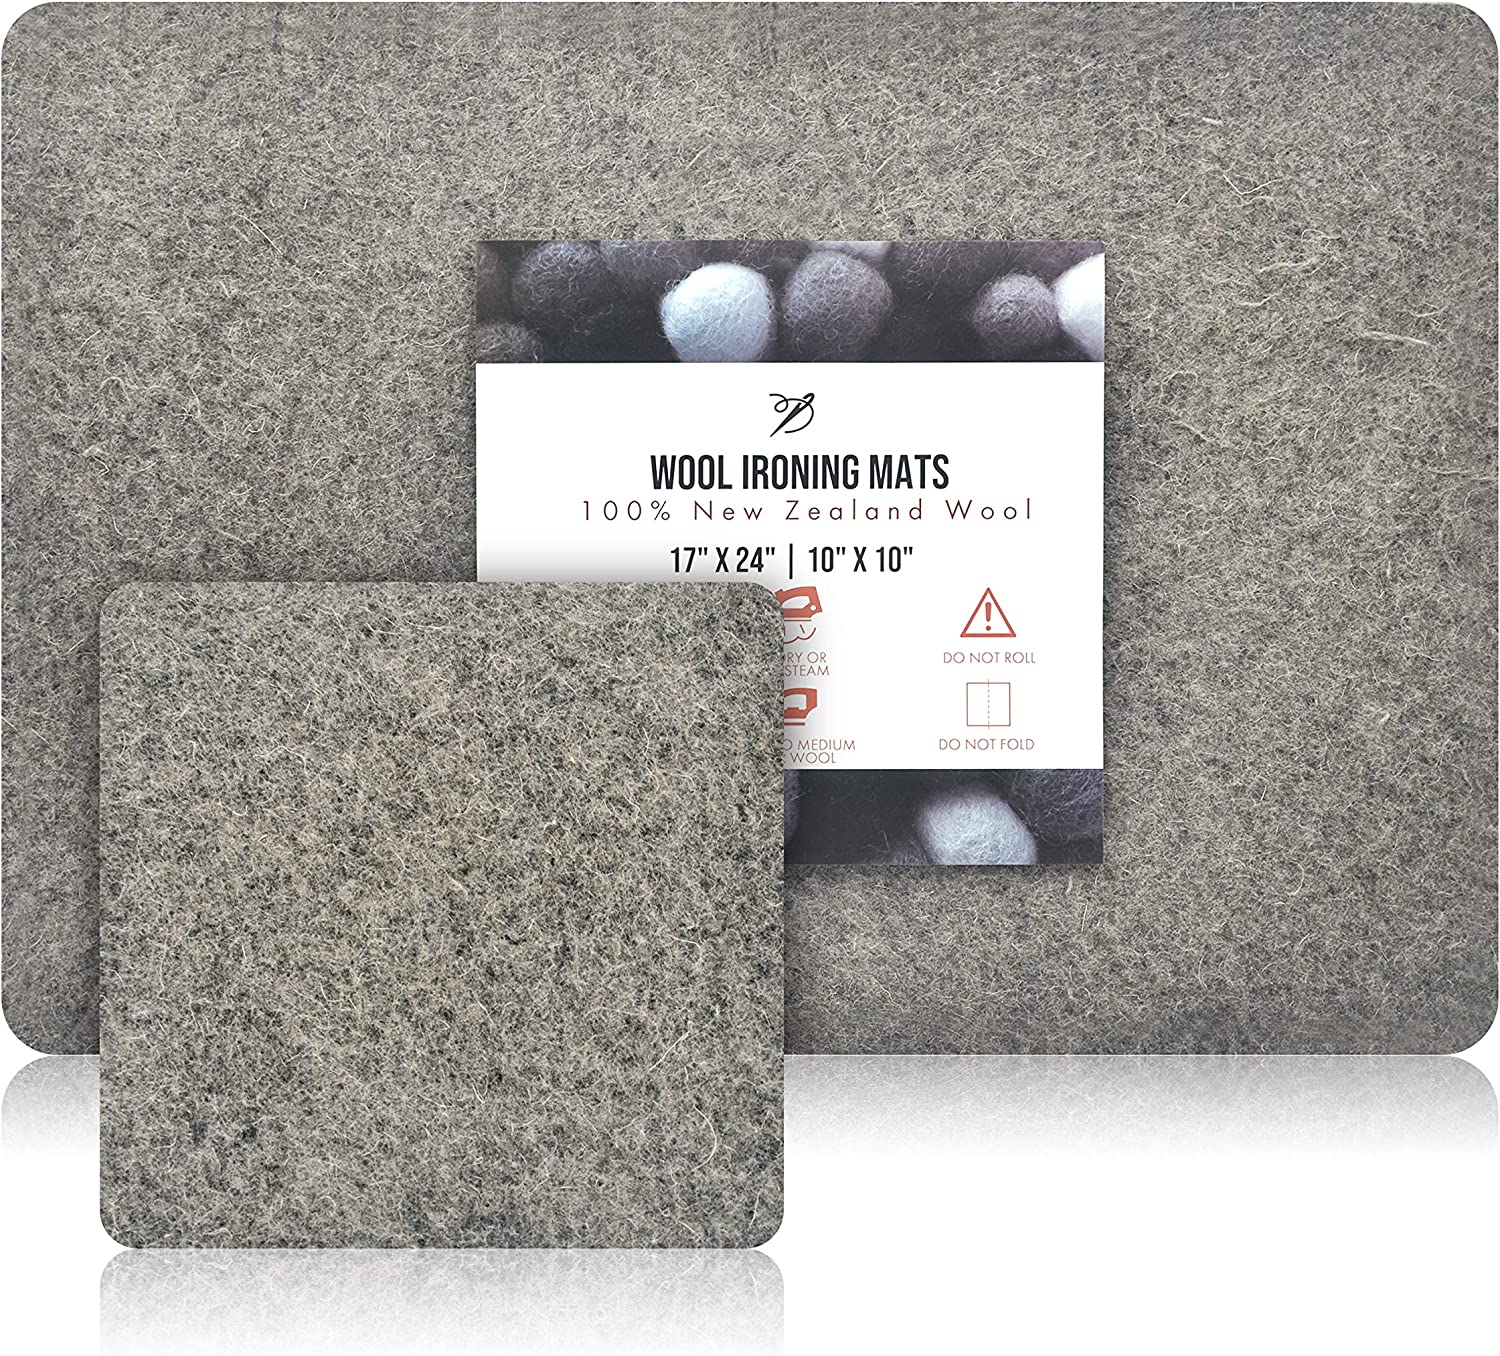 Templeton 100% New Zealand Max 43% OFF Wool Mats Quilti Pressing Crafts OFFer for